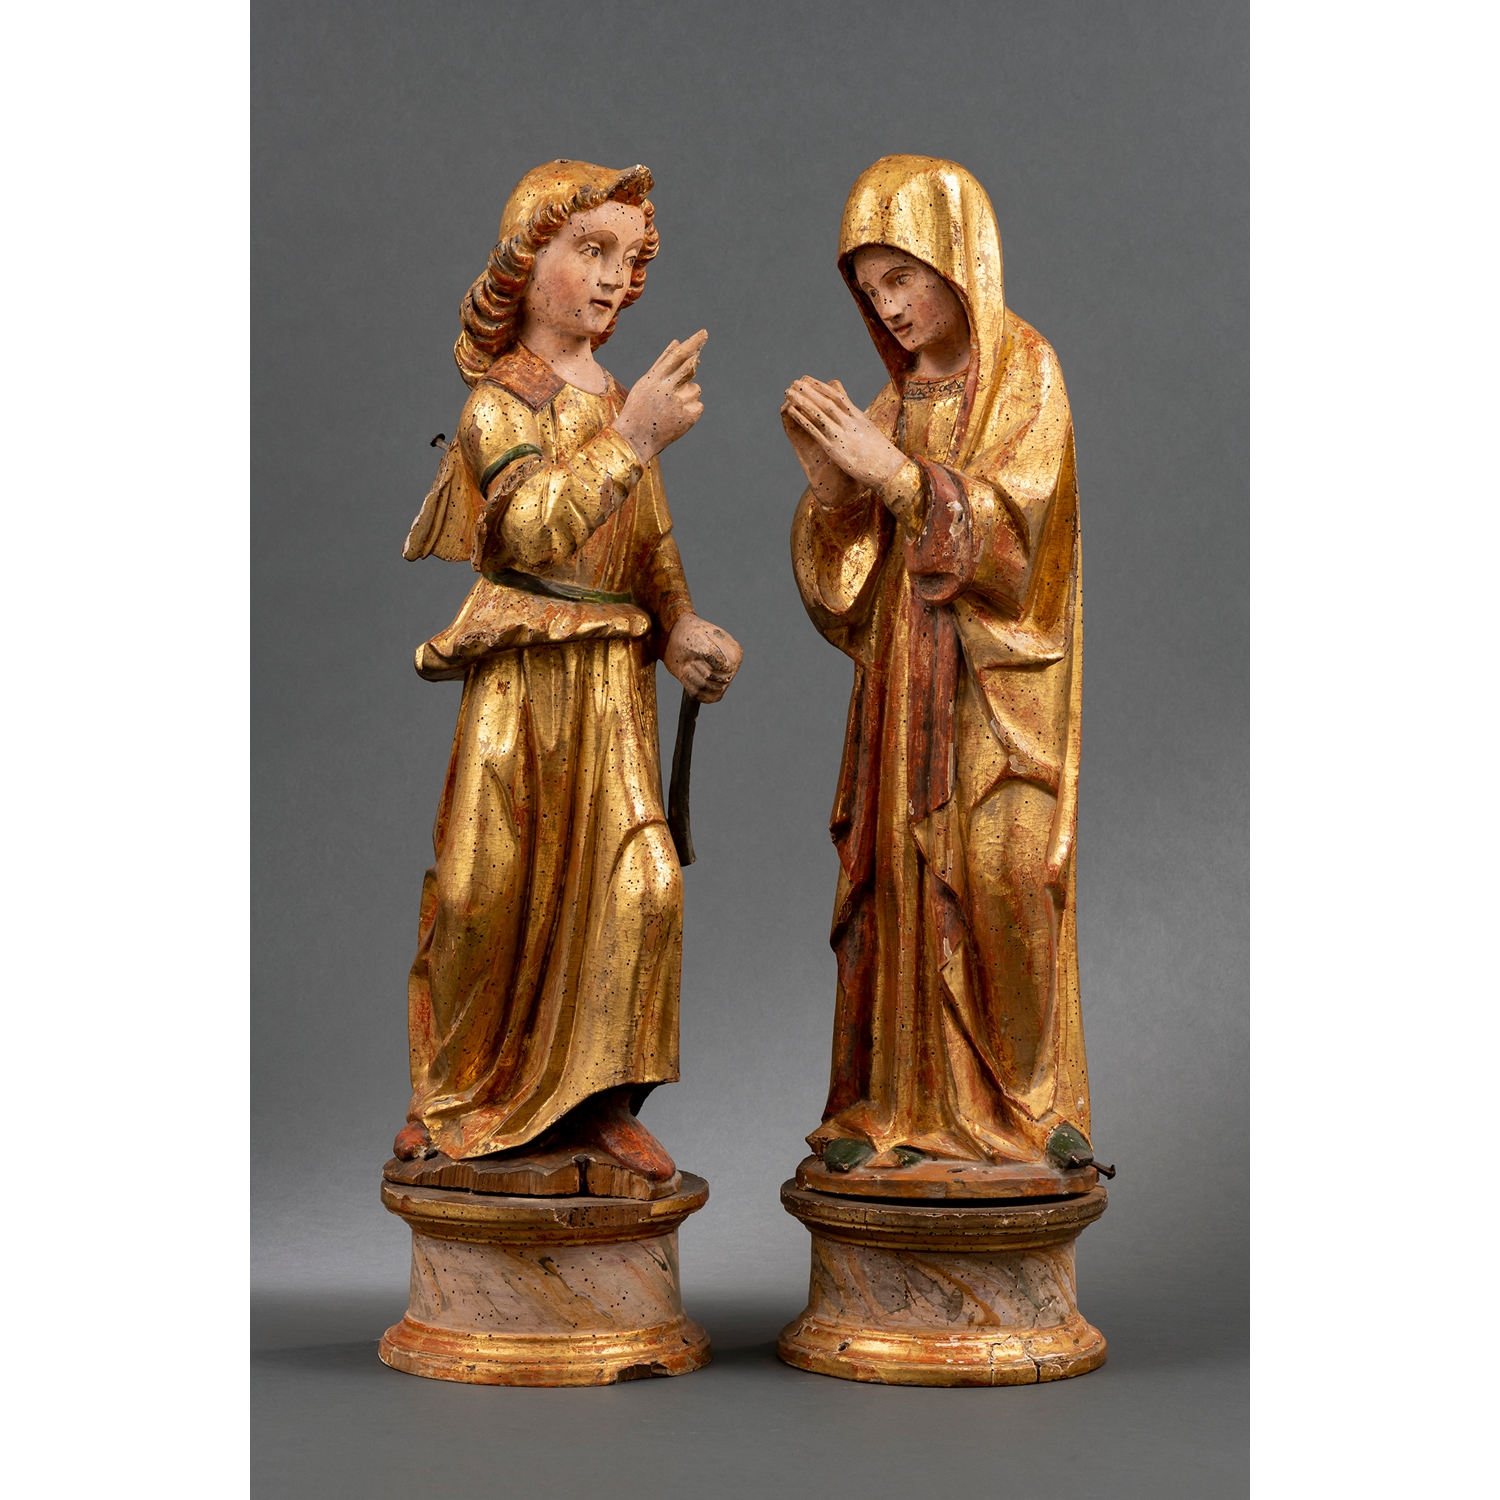 Circle of Giovanni Pietro and Giovanni Ambrogio Donati (documented between 1478-1528 and 1484-1514)  Annunciation Group